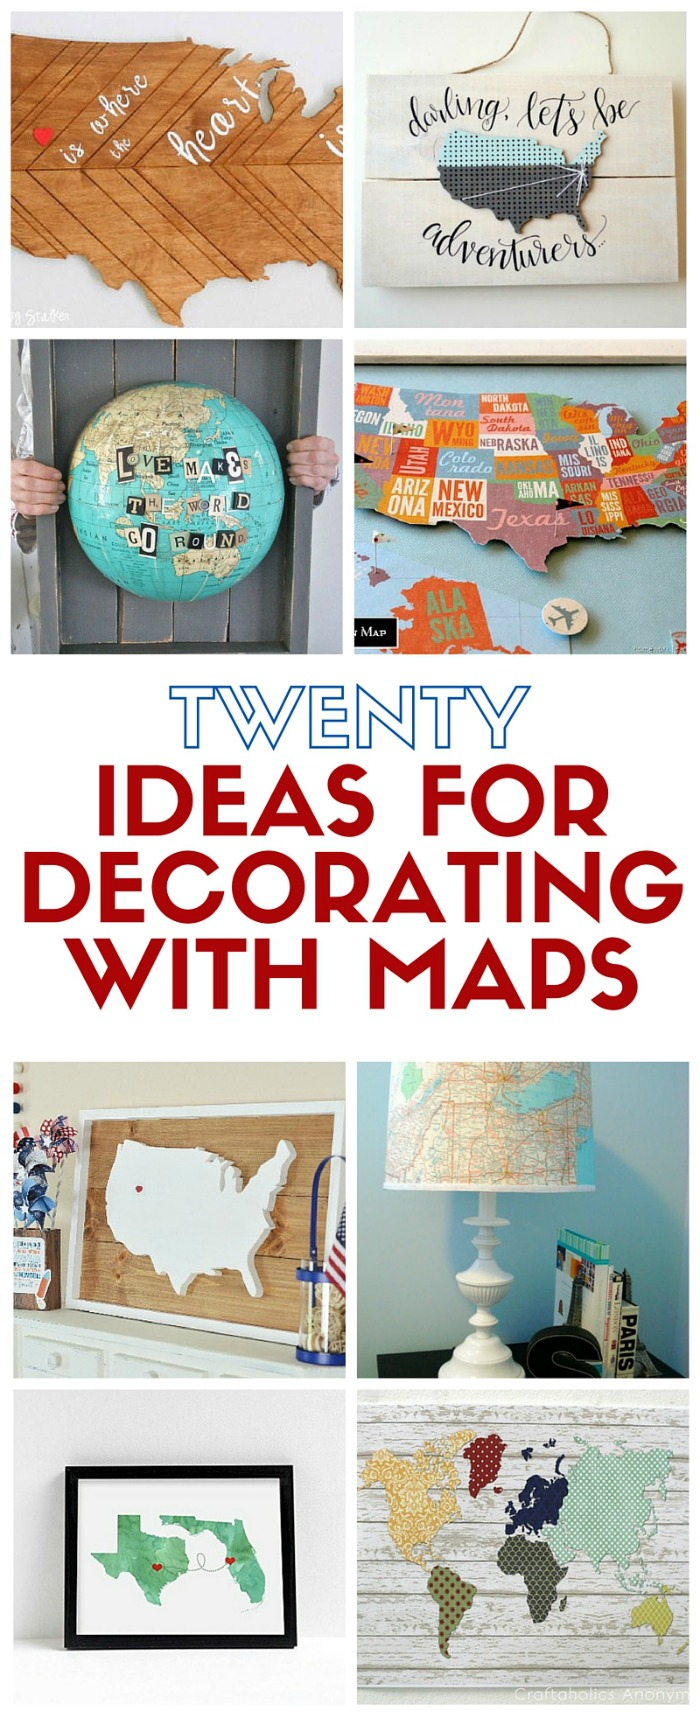 20 Ideas for Decorating with Maps | The Crafty Blog Stalker